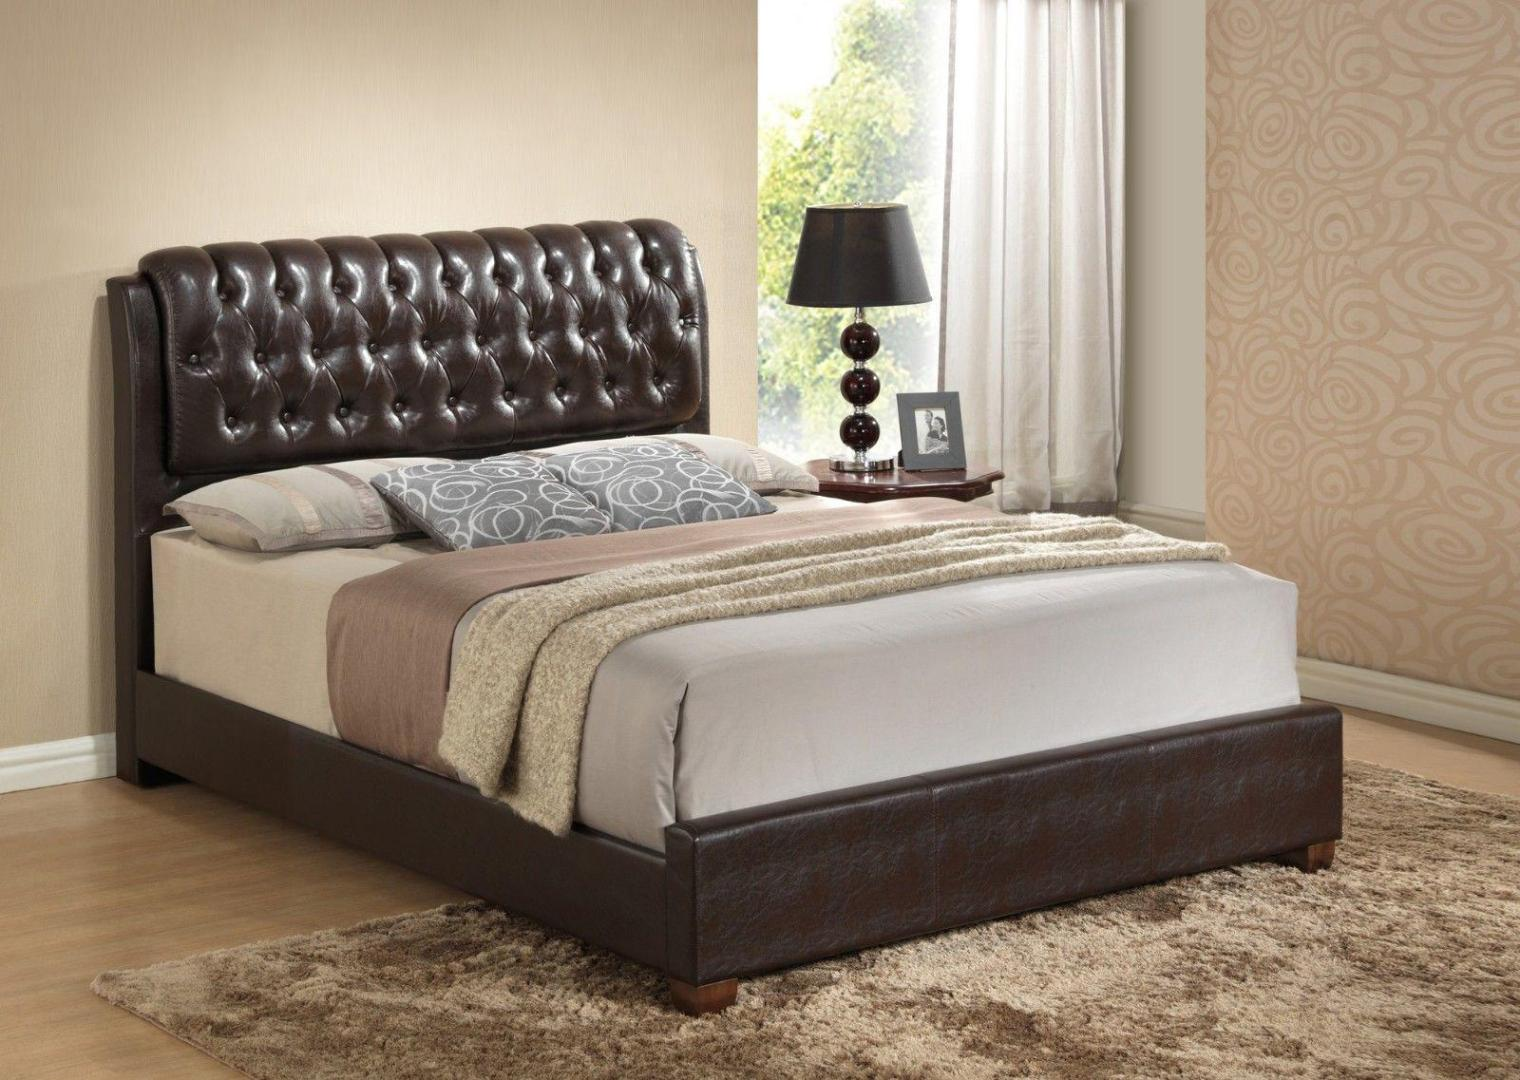 Image of: Leather Tufted Headboard Queen